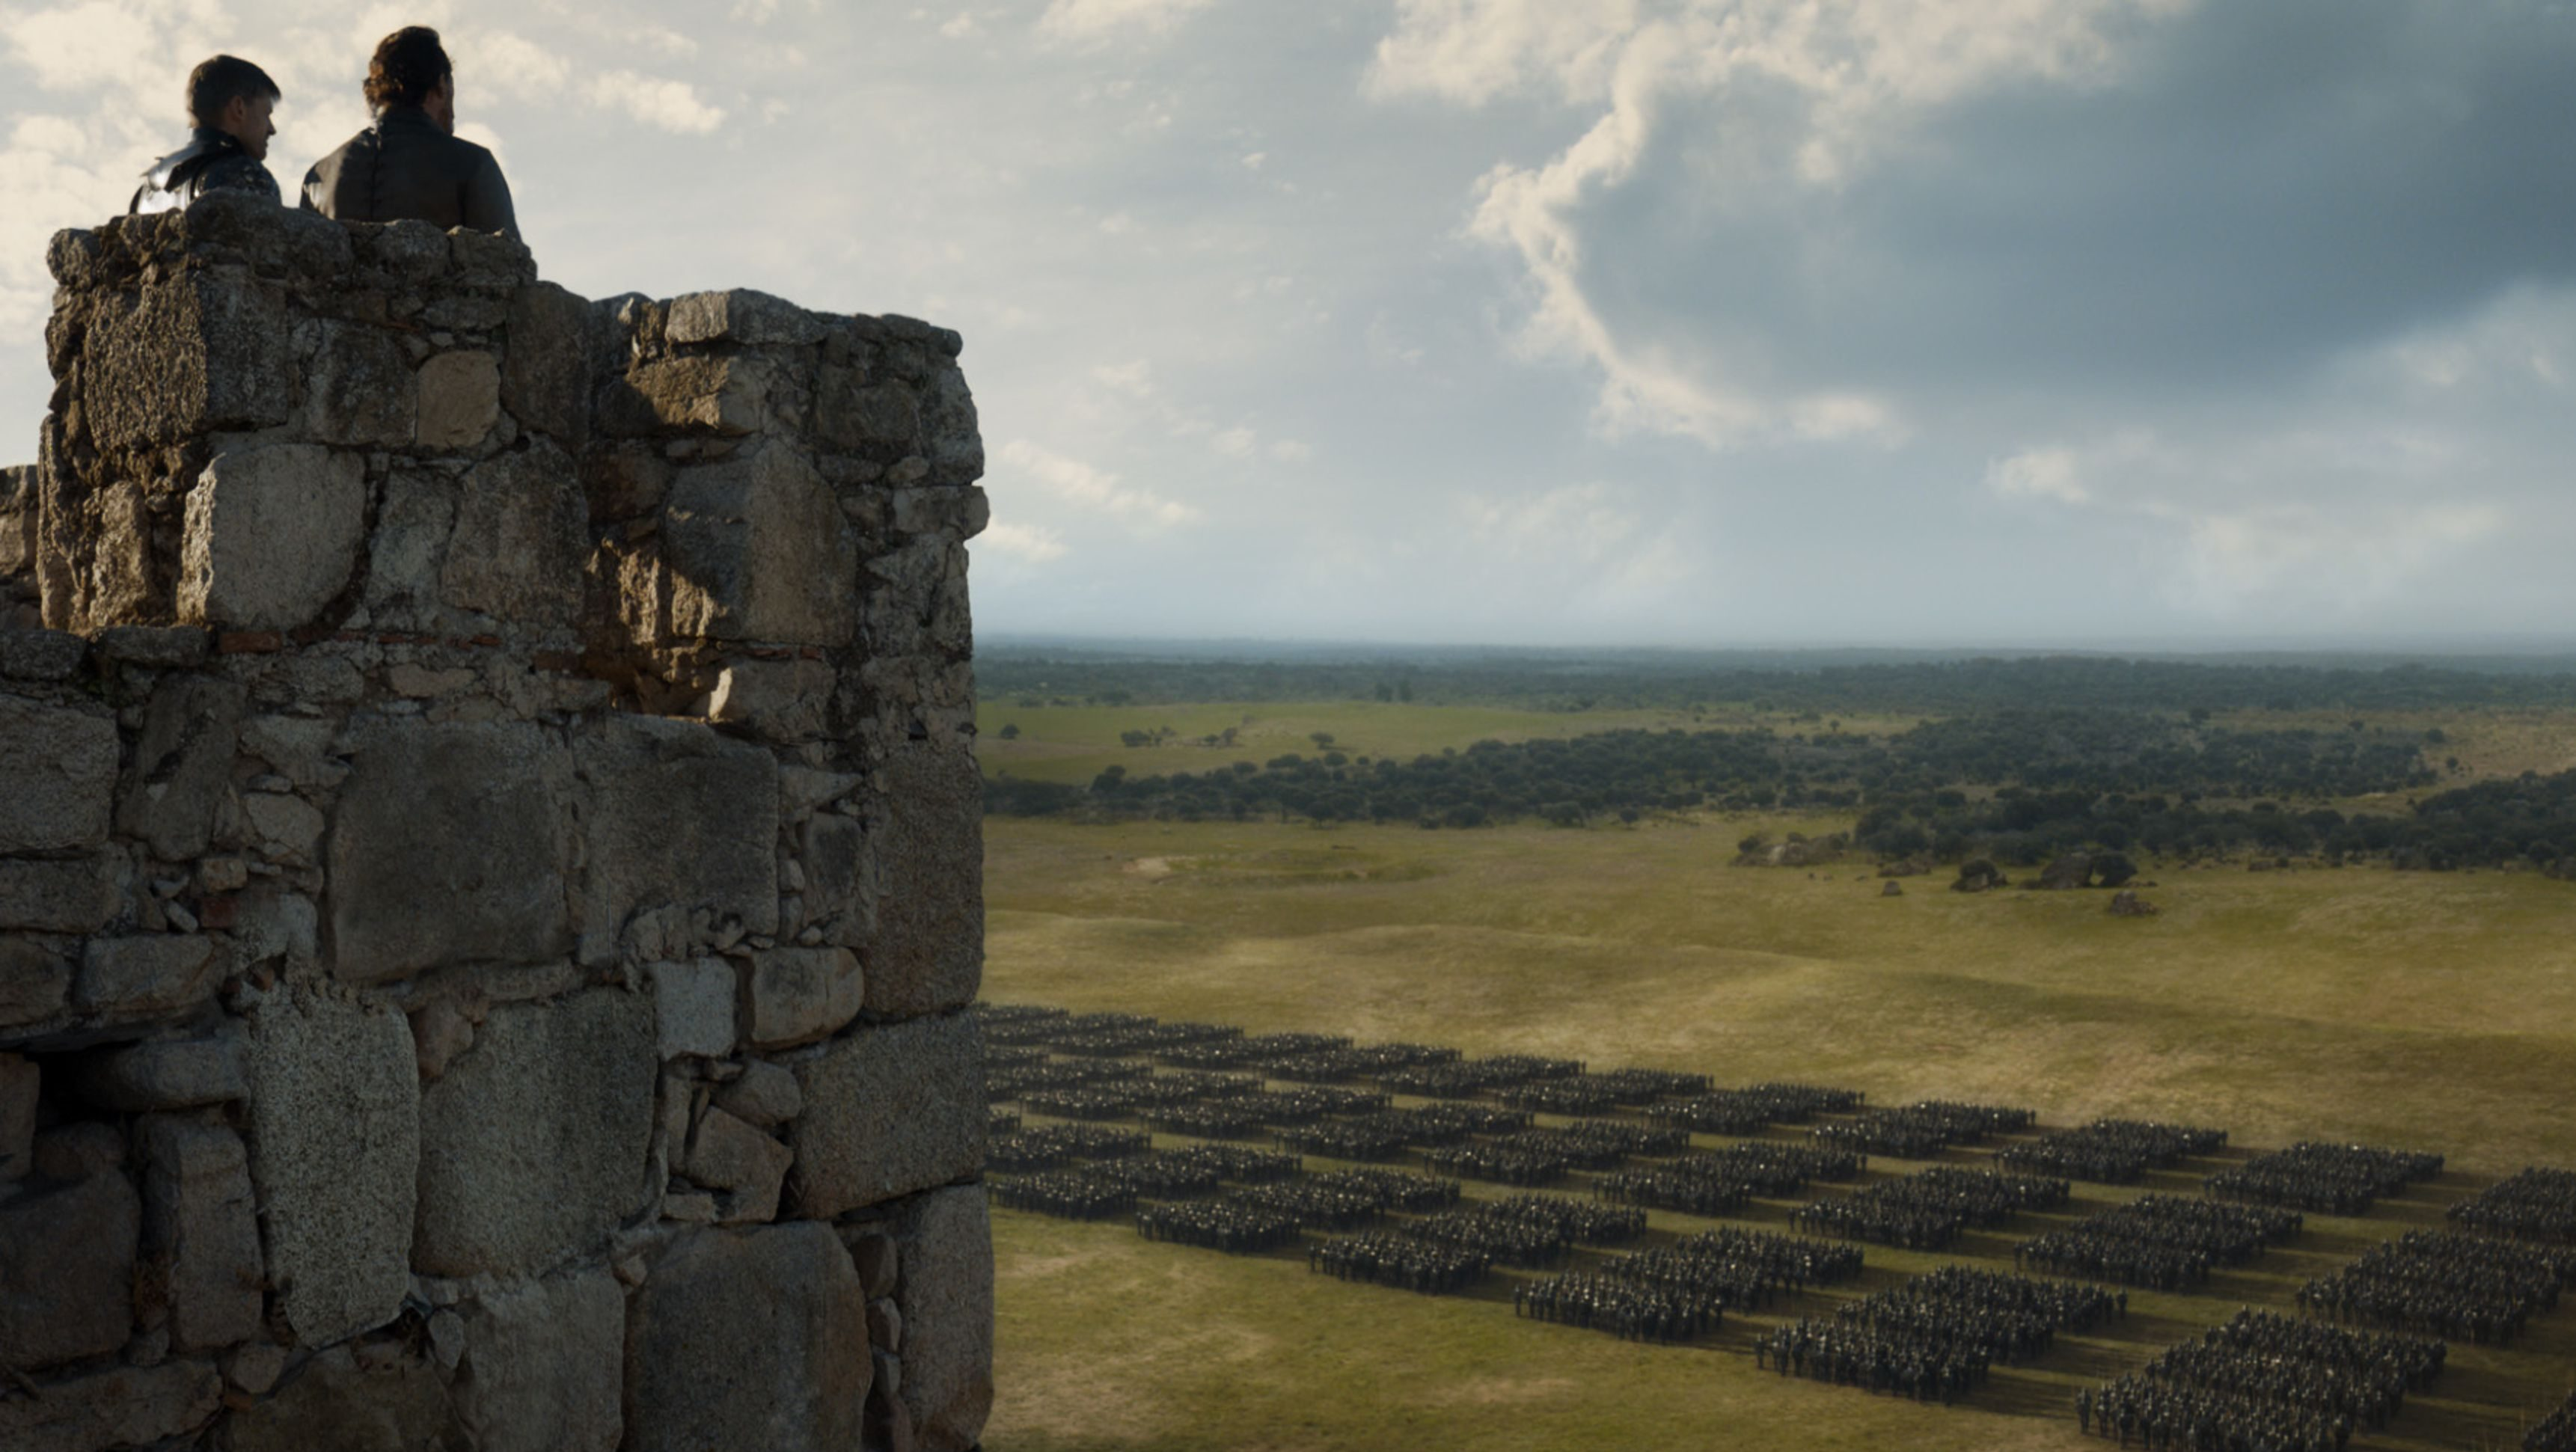 Game Of Thrones Longest Battle Shoot Took 55 Days To Complete